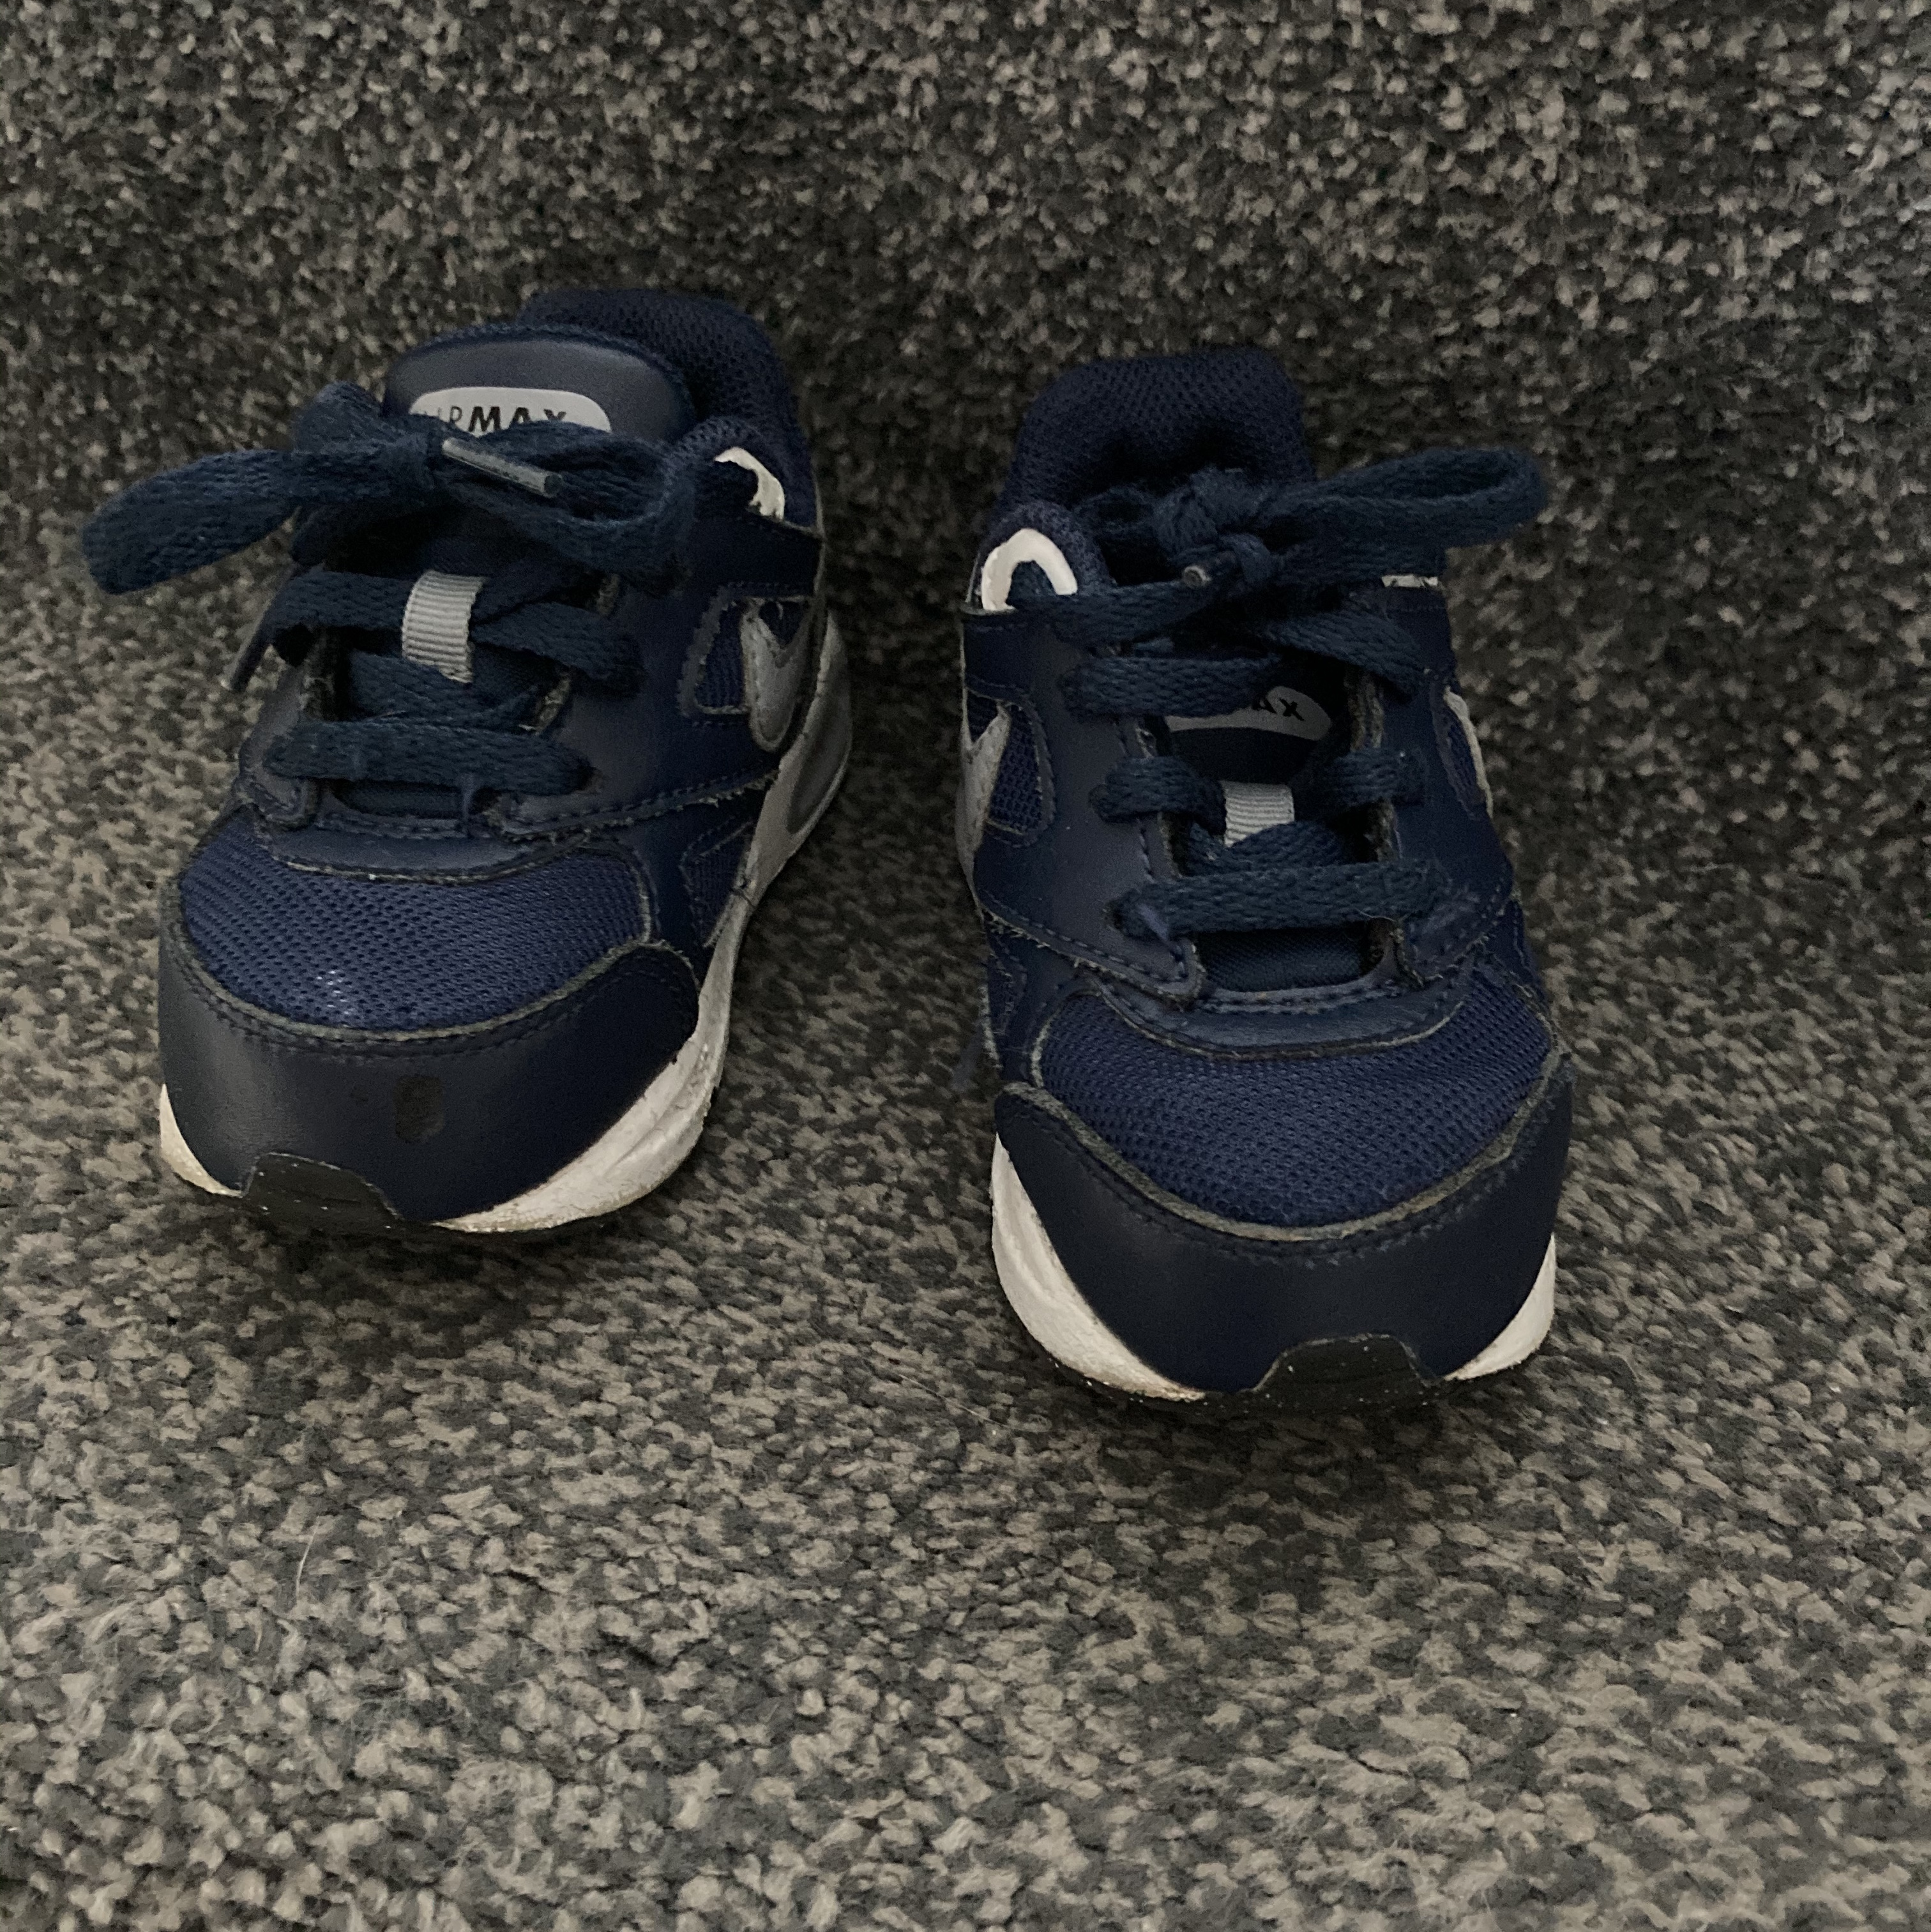 Infant boys 5.5 Nike trainers in good